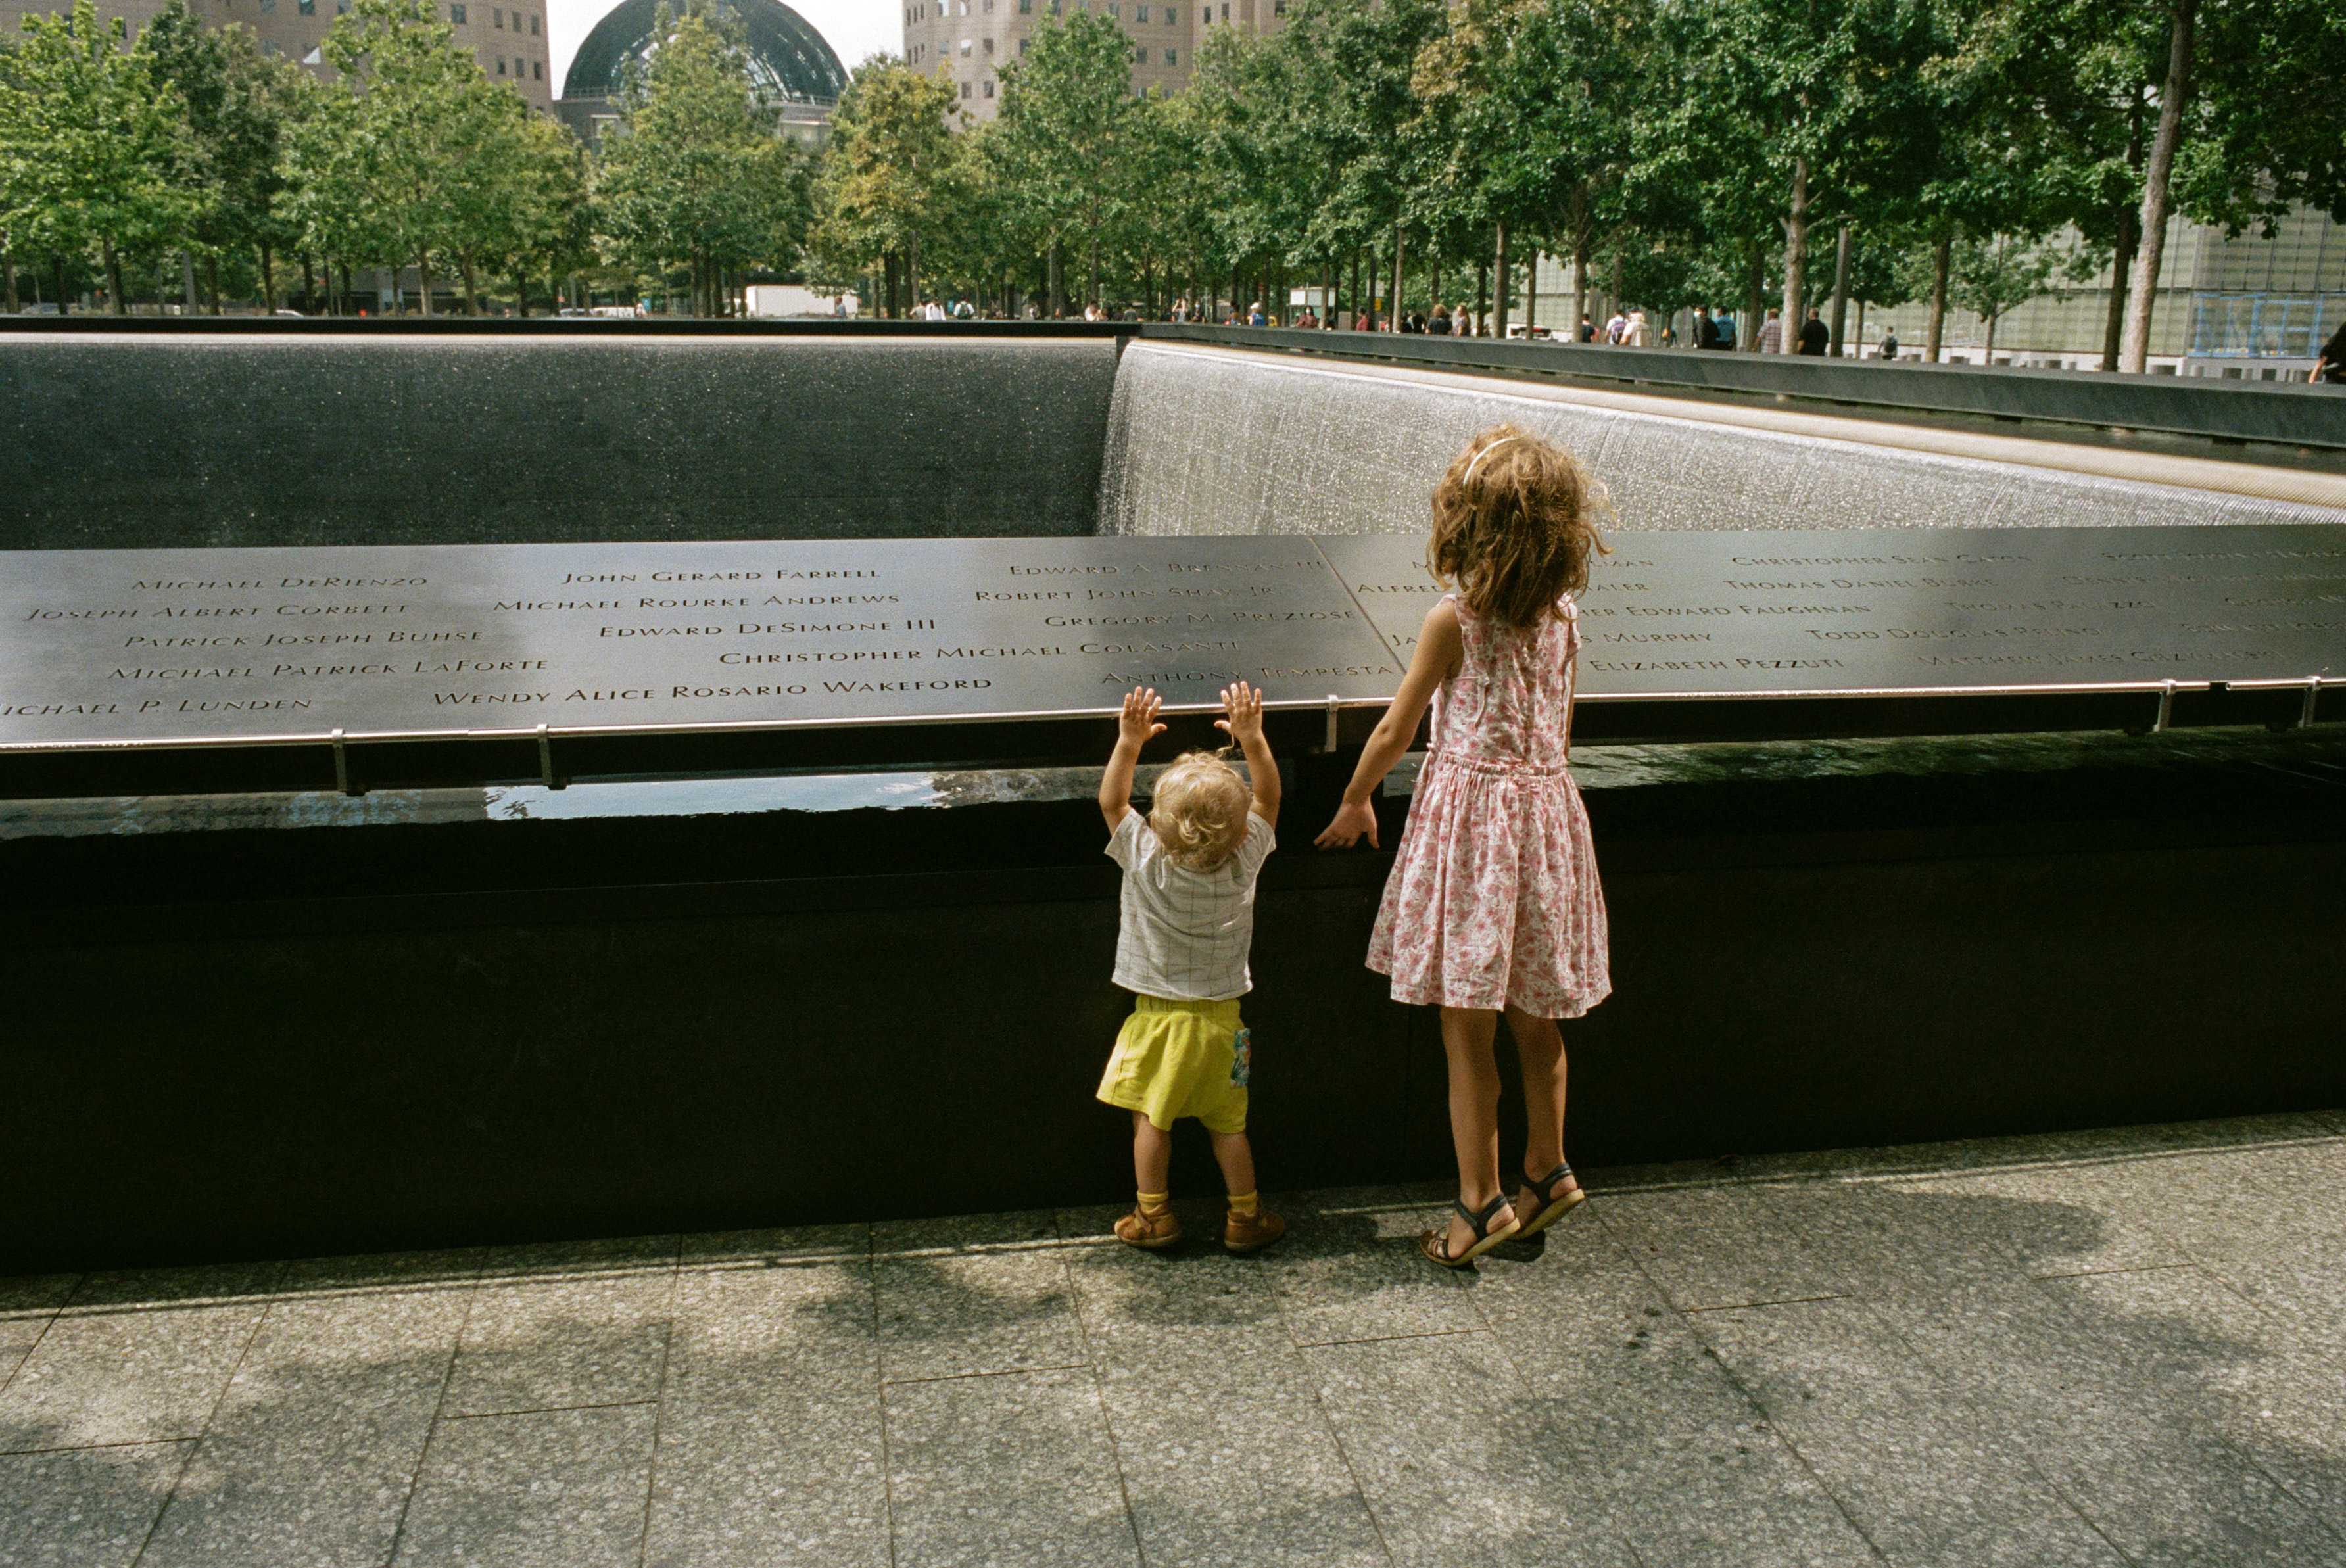 Children strain for a look over the lip of the 9/11 Memorial reflecting pool, Aug. 31, 2021.